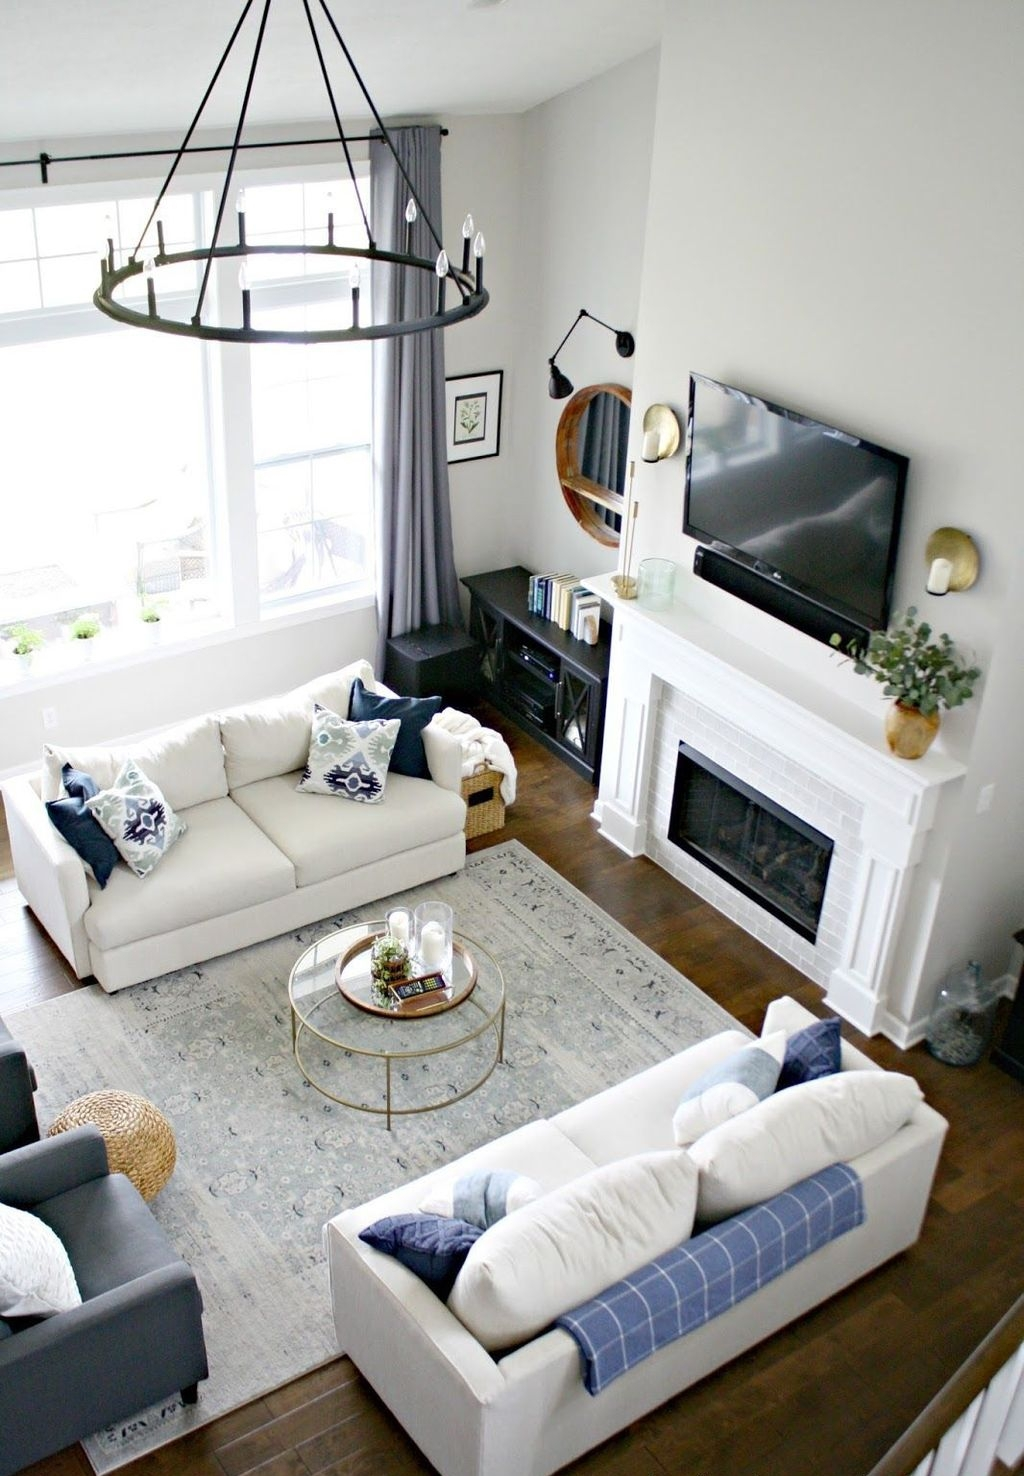 Awesome Living Room Layout Ideas to Try